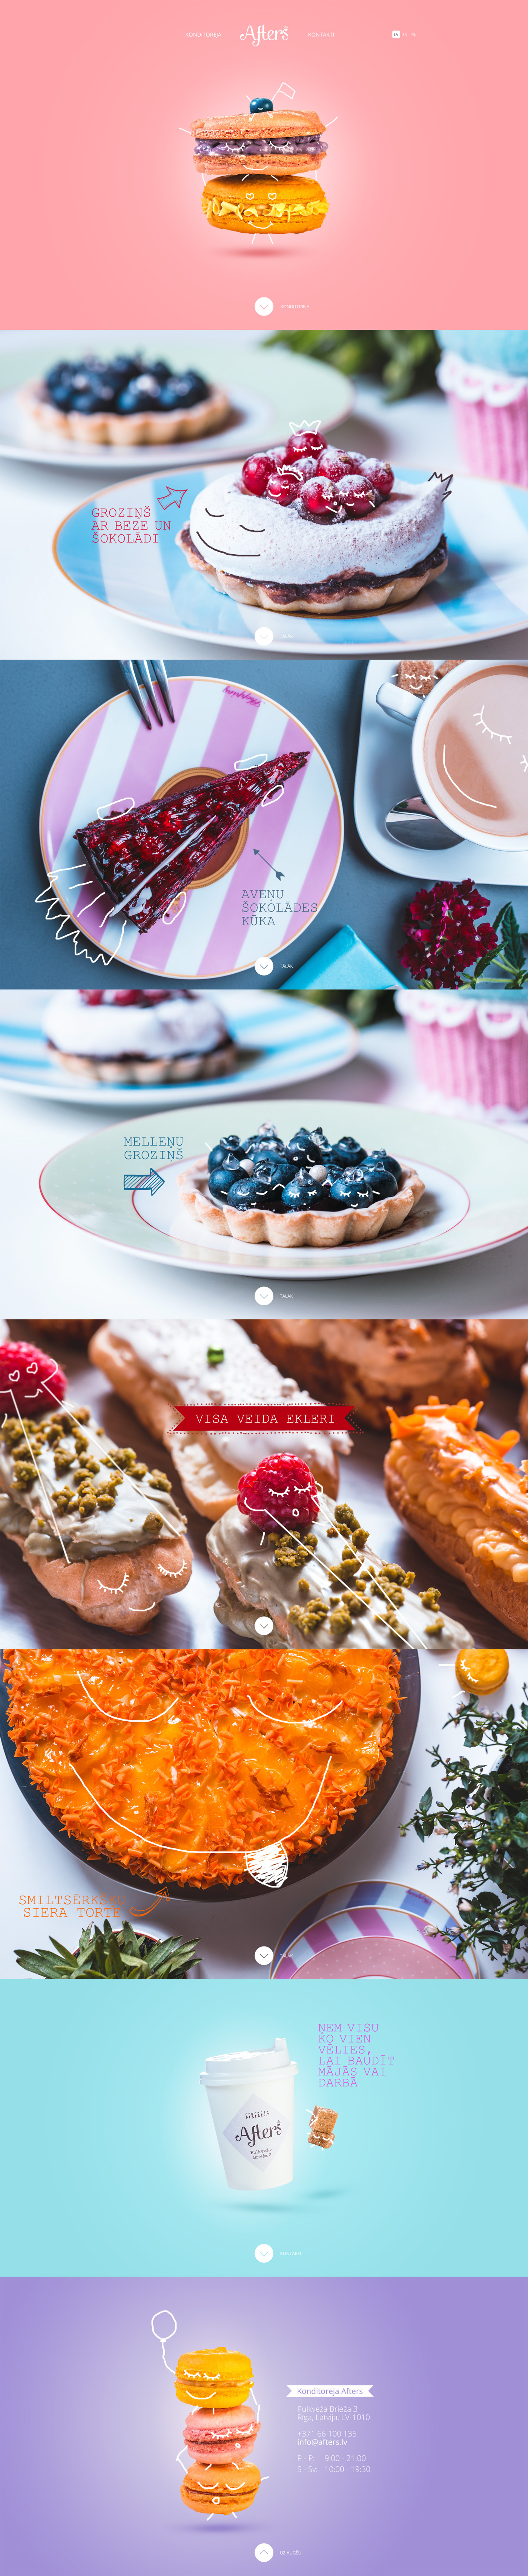 bakery afters macarons cupcakes funny Studio43